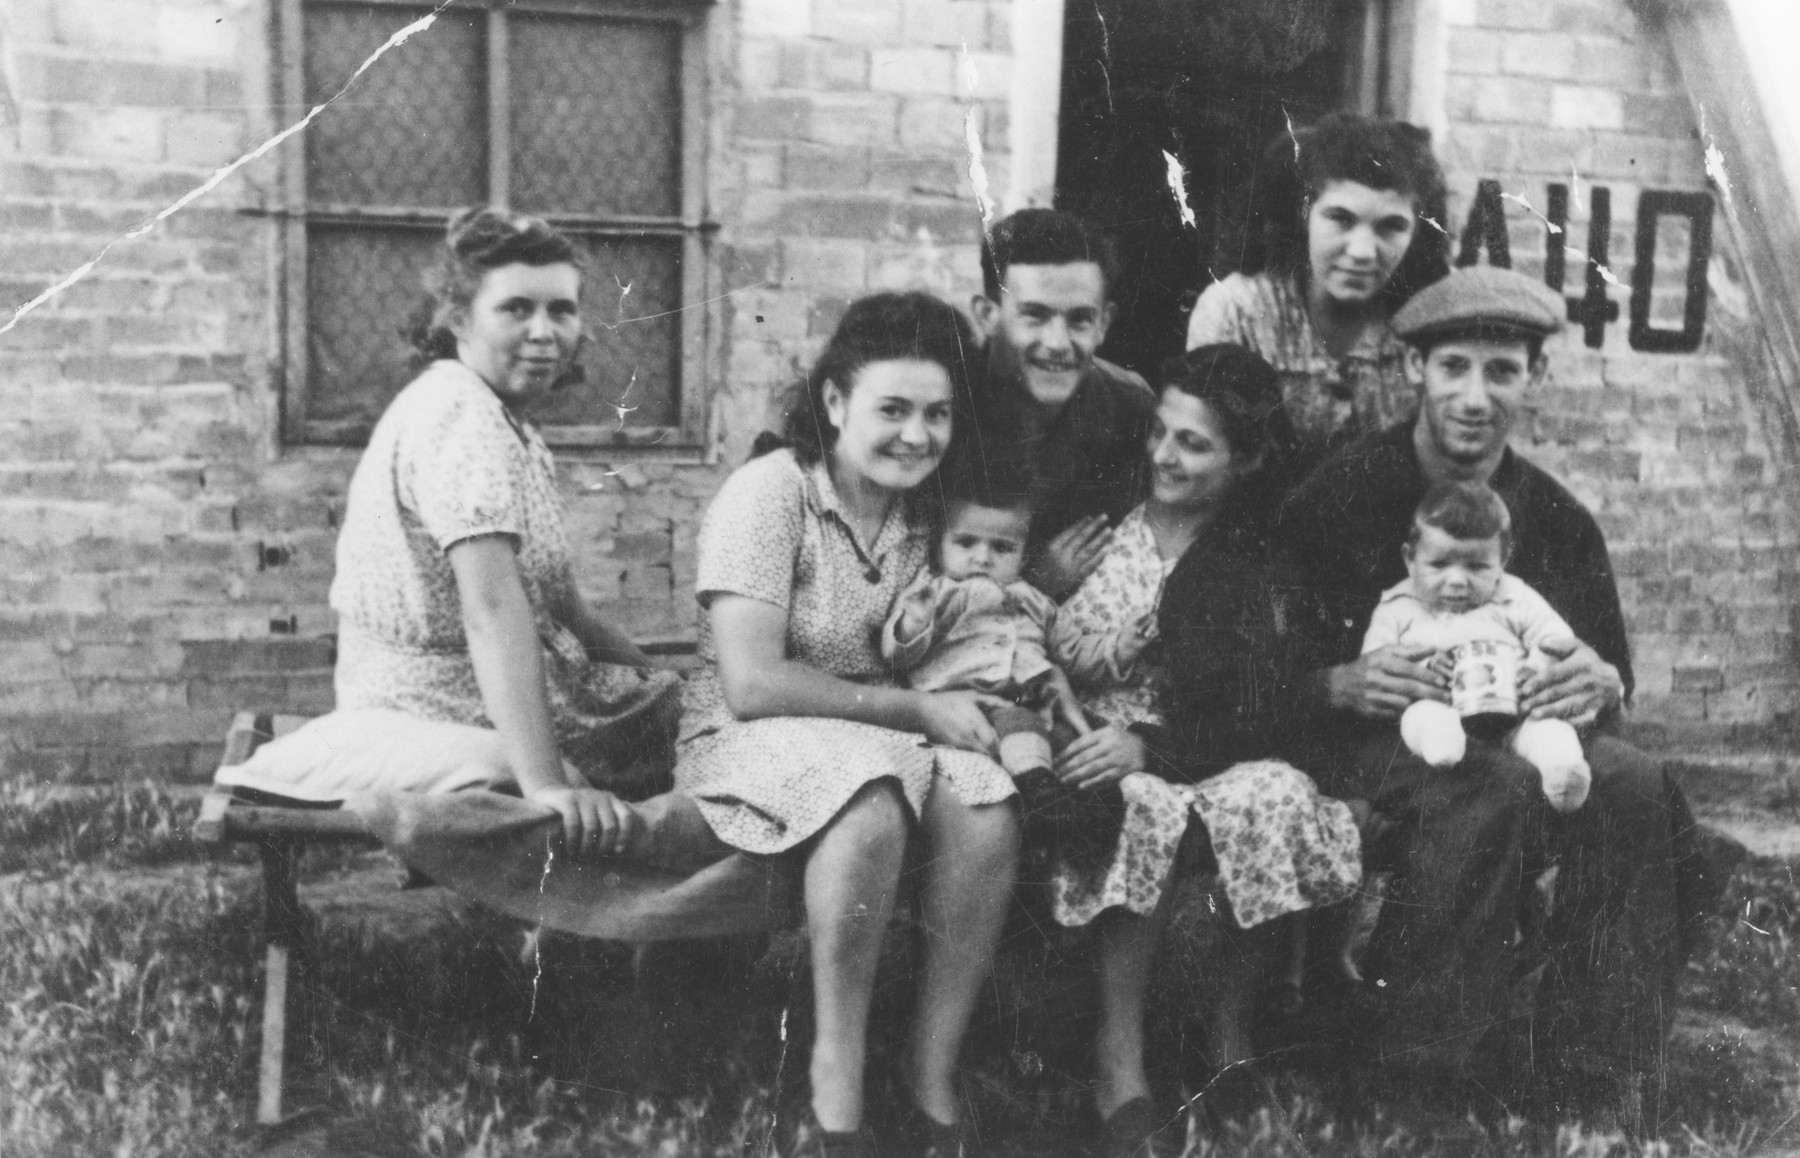 Group portrait of Jewish DPs outside a barracks in the Bari displaced persons camp.  Among those pictured are Izidor and Tauba Schachter with their baby Miriam Schachter (now Enright), on the far right; and Etta Gipsman (far left).  Etta  is wearing a dress made from fabric sent by relatives in America.